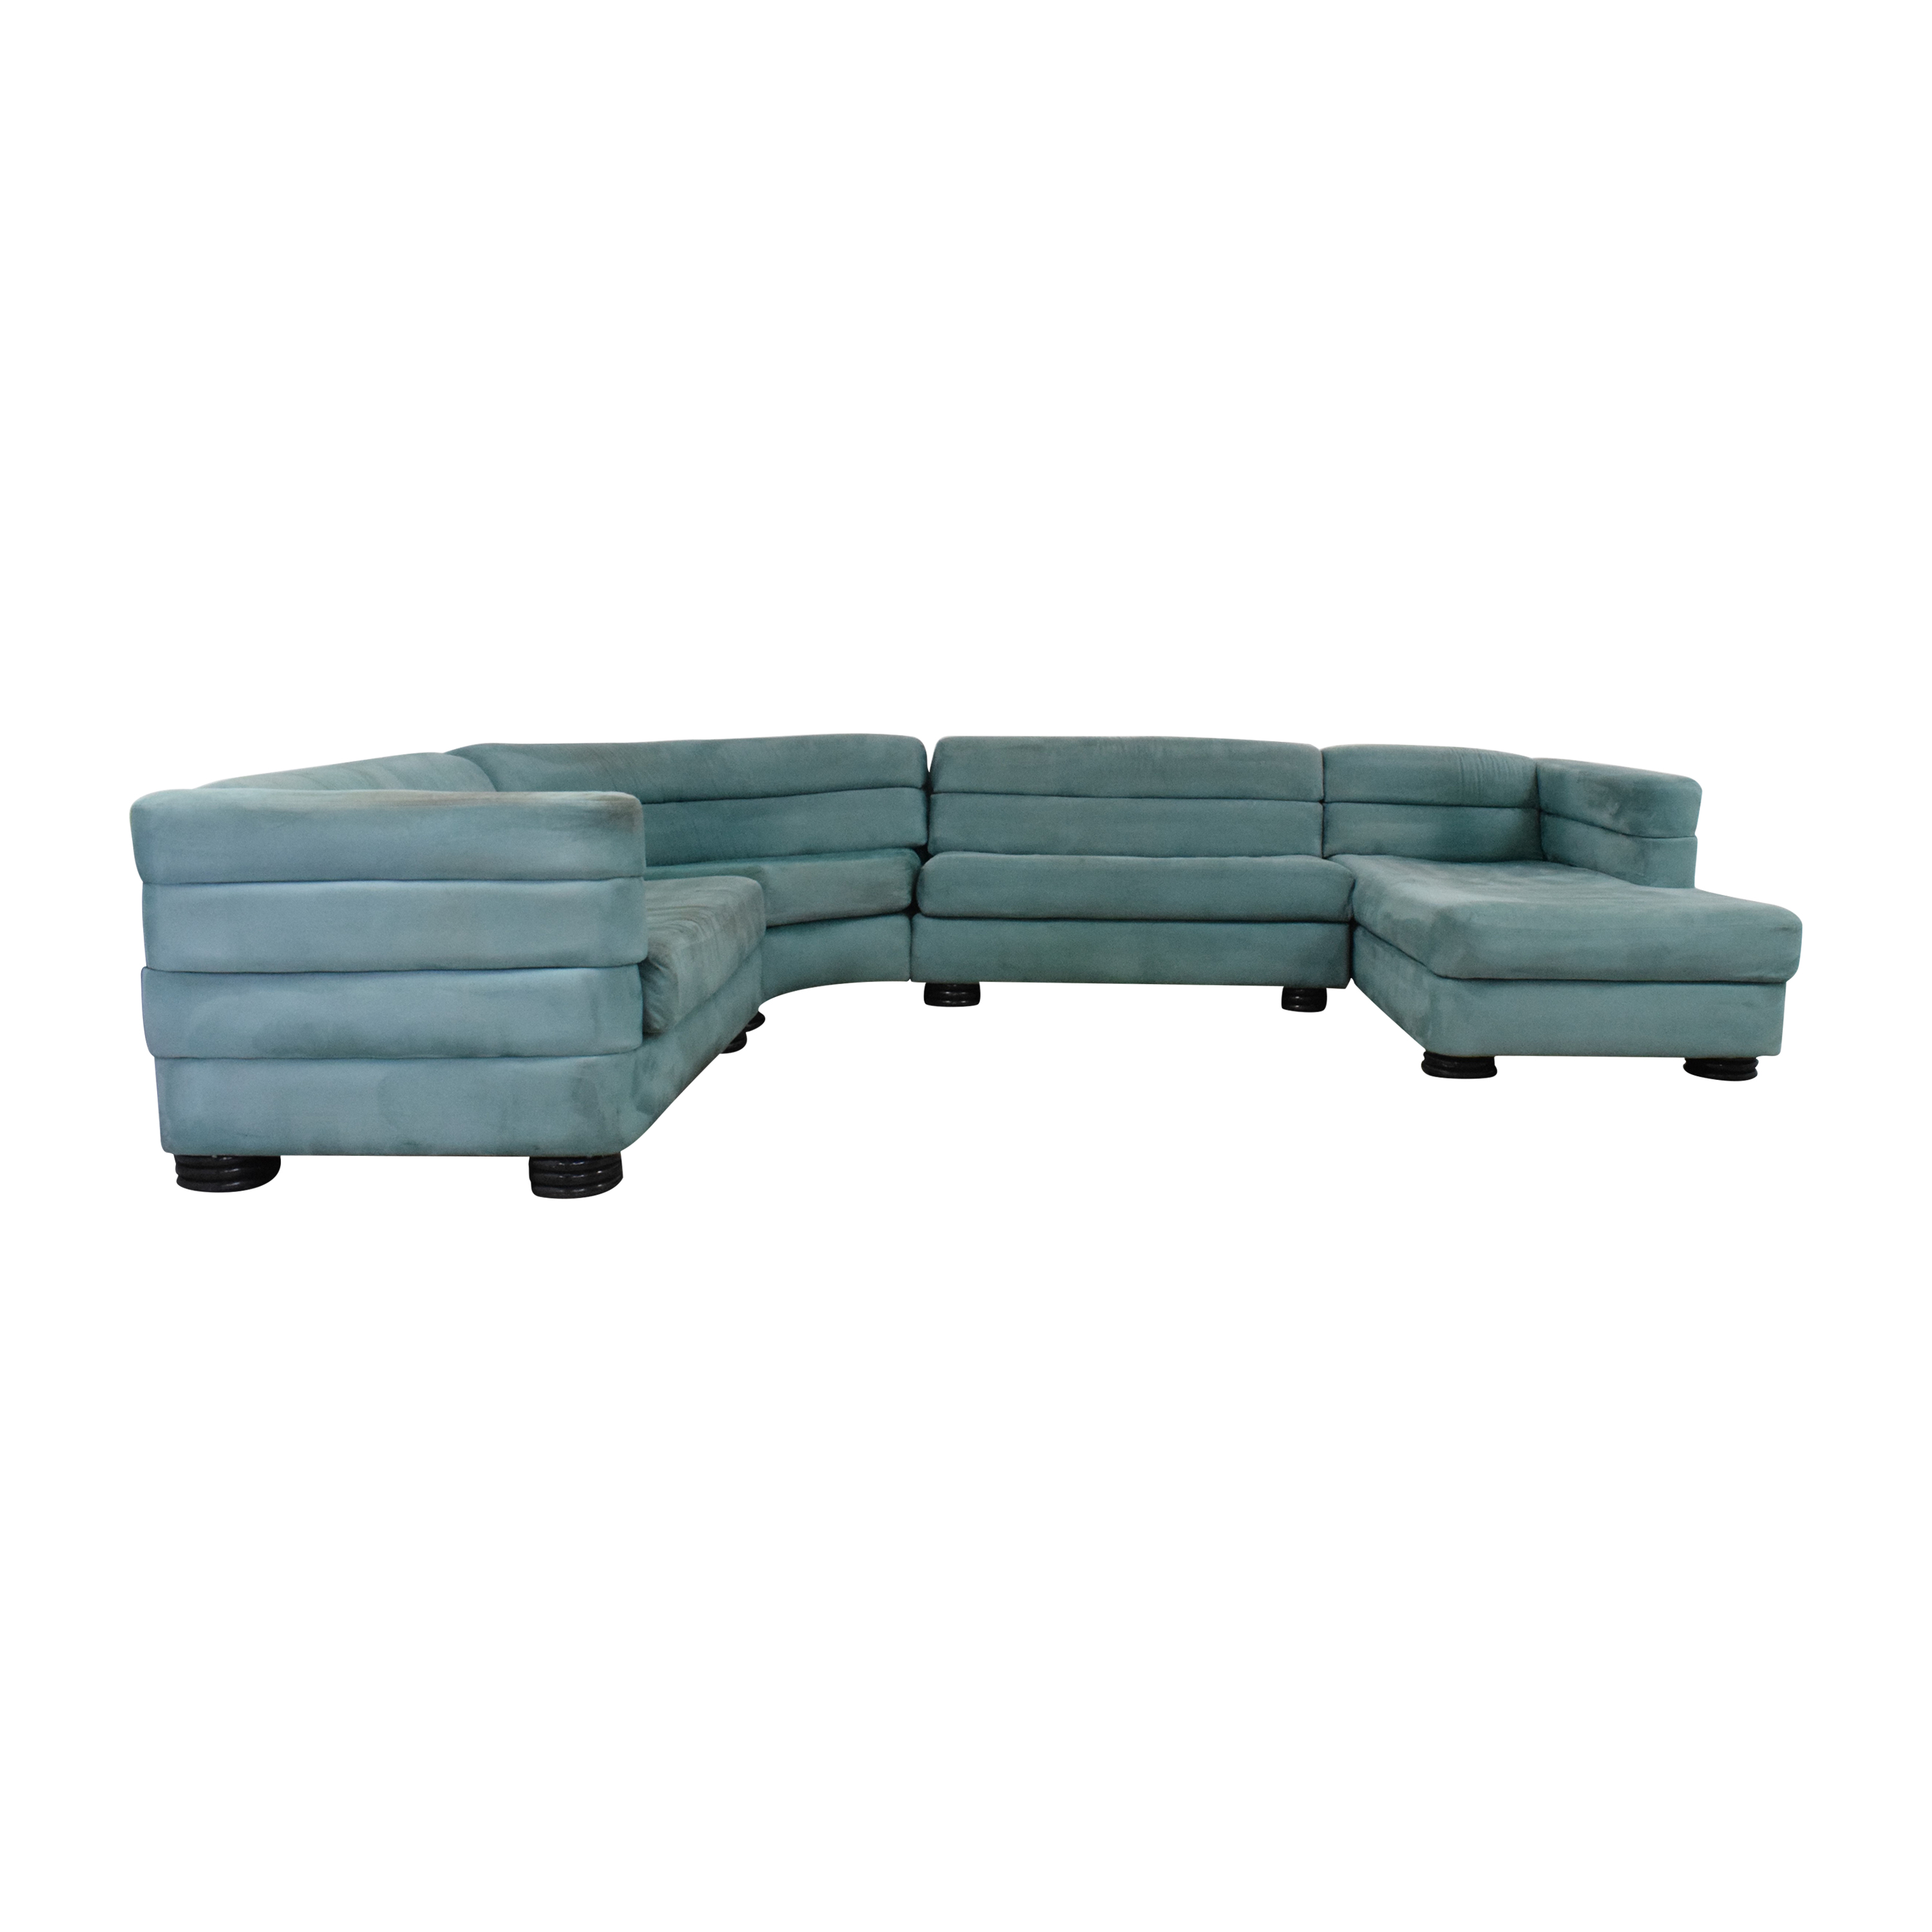 Directional Furniture Directional Furniture Four Piece Sectional Sofa on sale